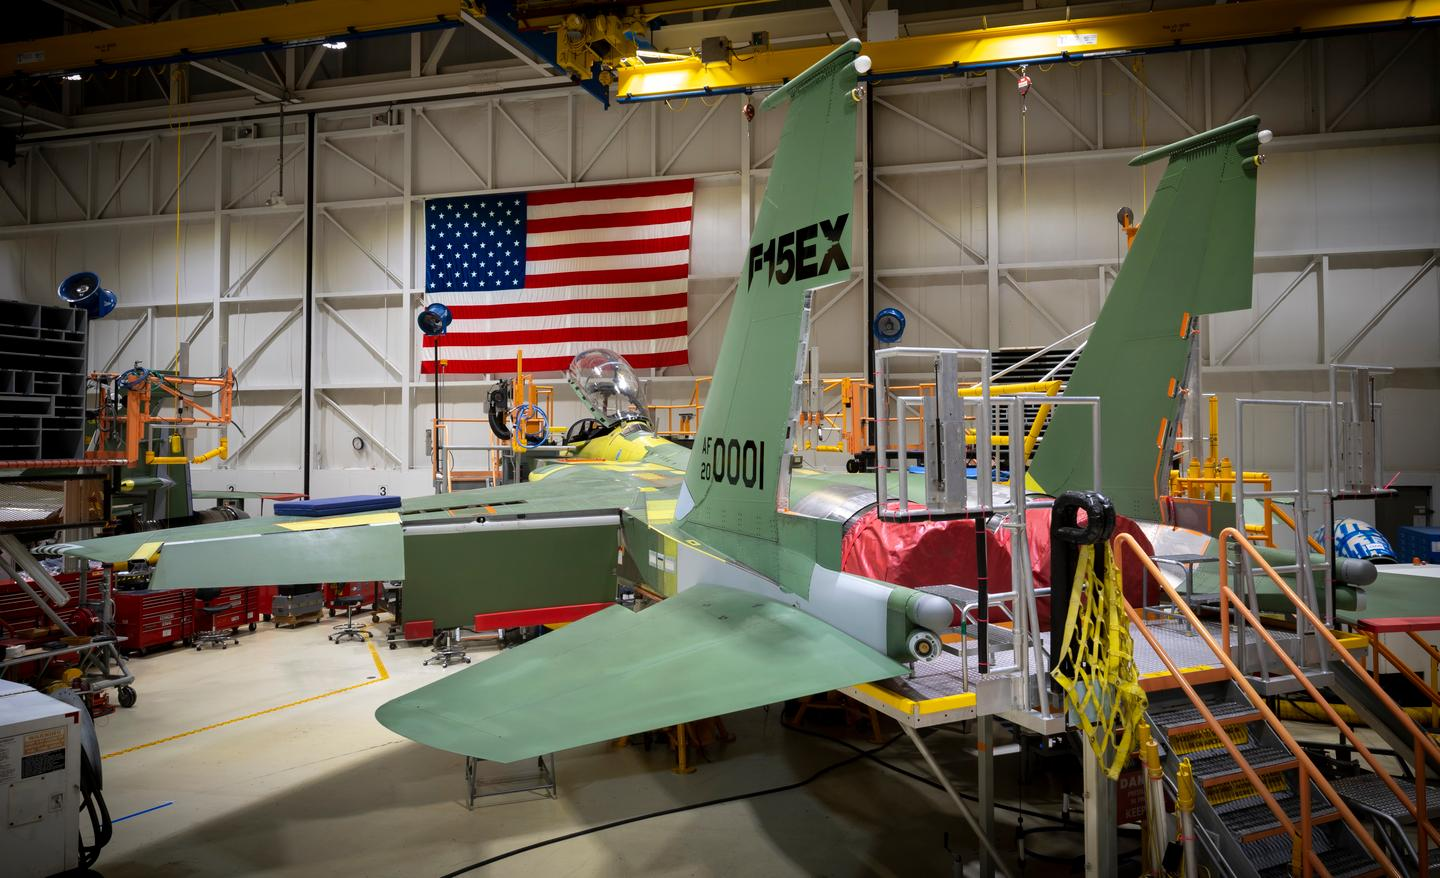 An F-15EX fighter jet under construction in St. Louis